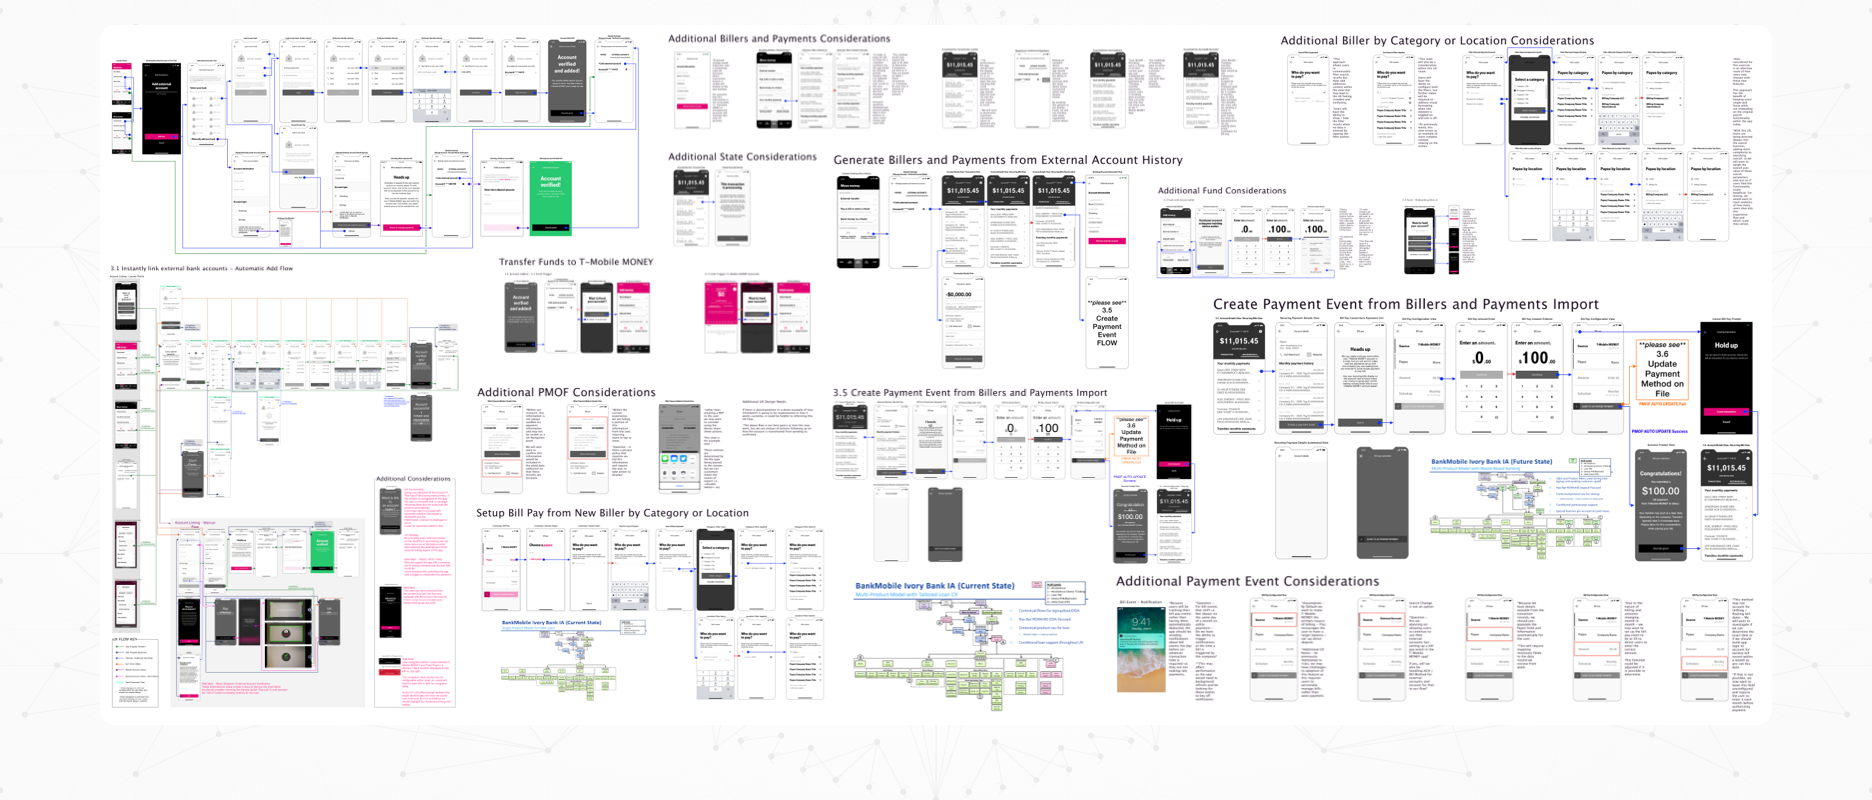 T-Mobile MONEY - Case Study Image - Project Kickoff and Full Audit